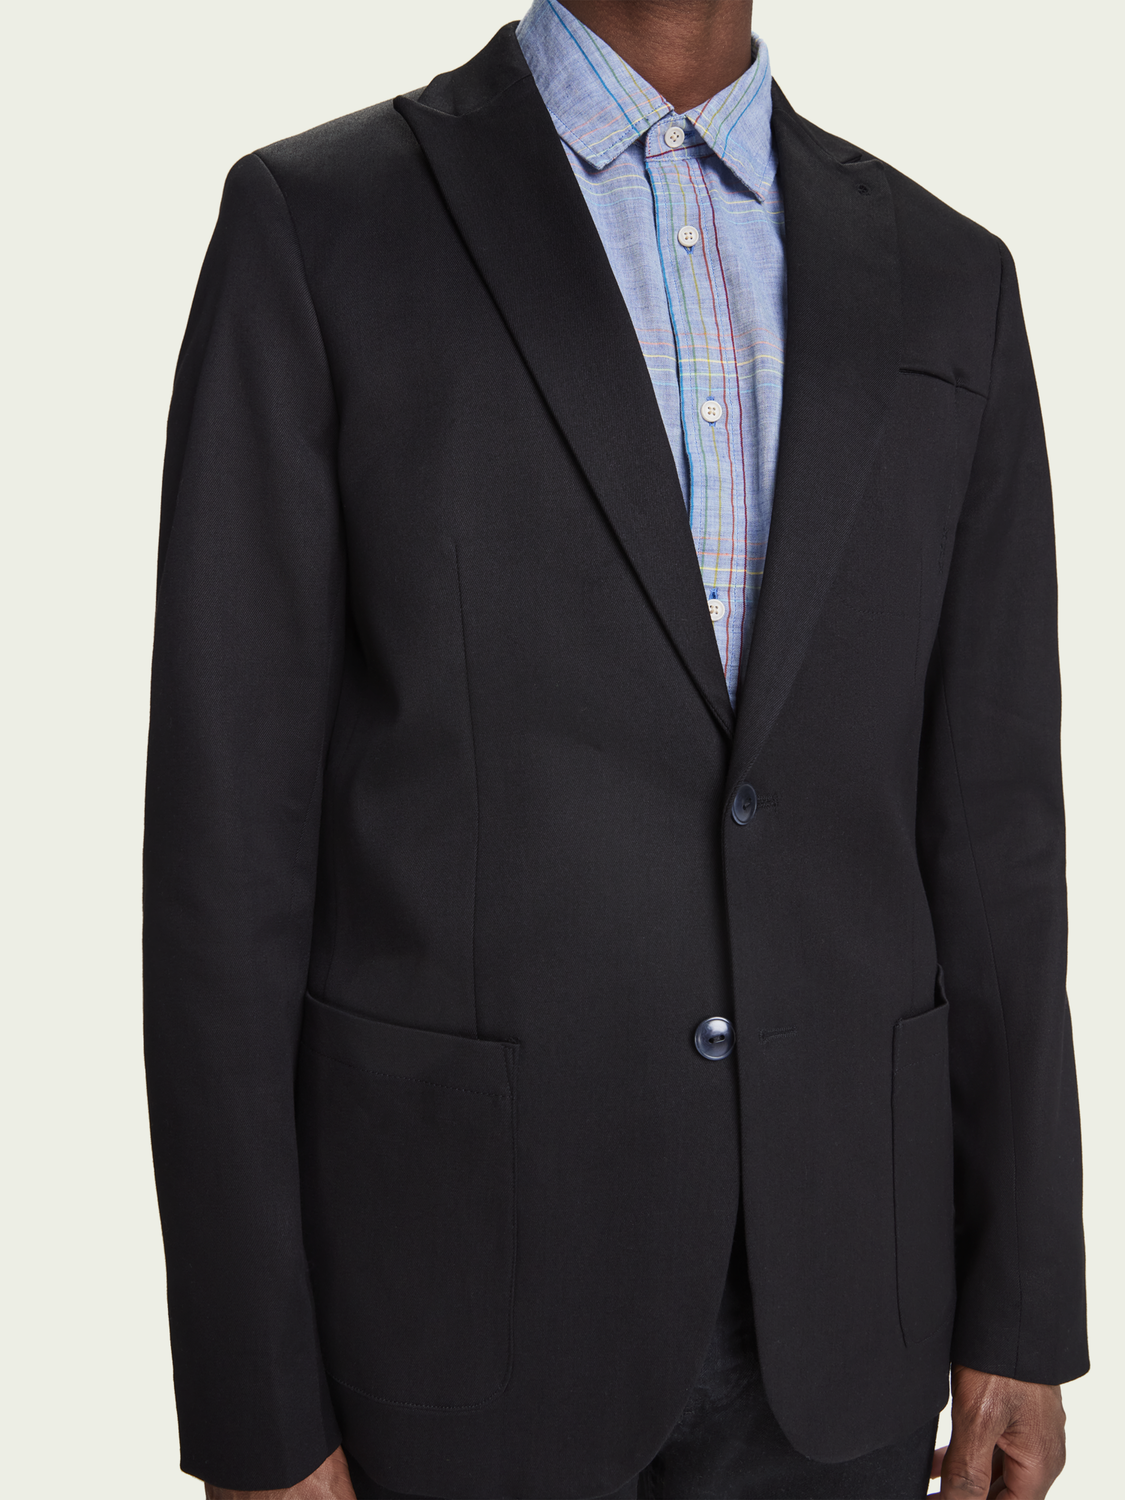 Men Sports blazer with pockets